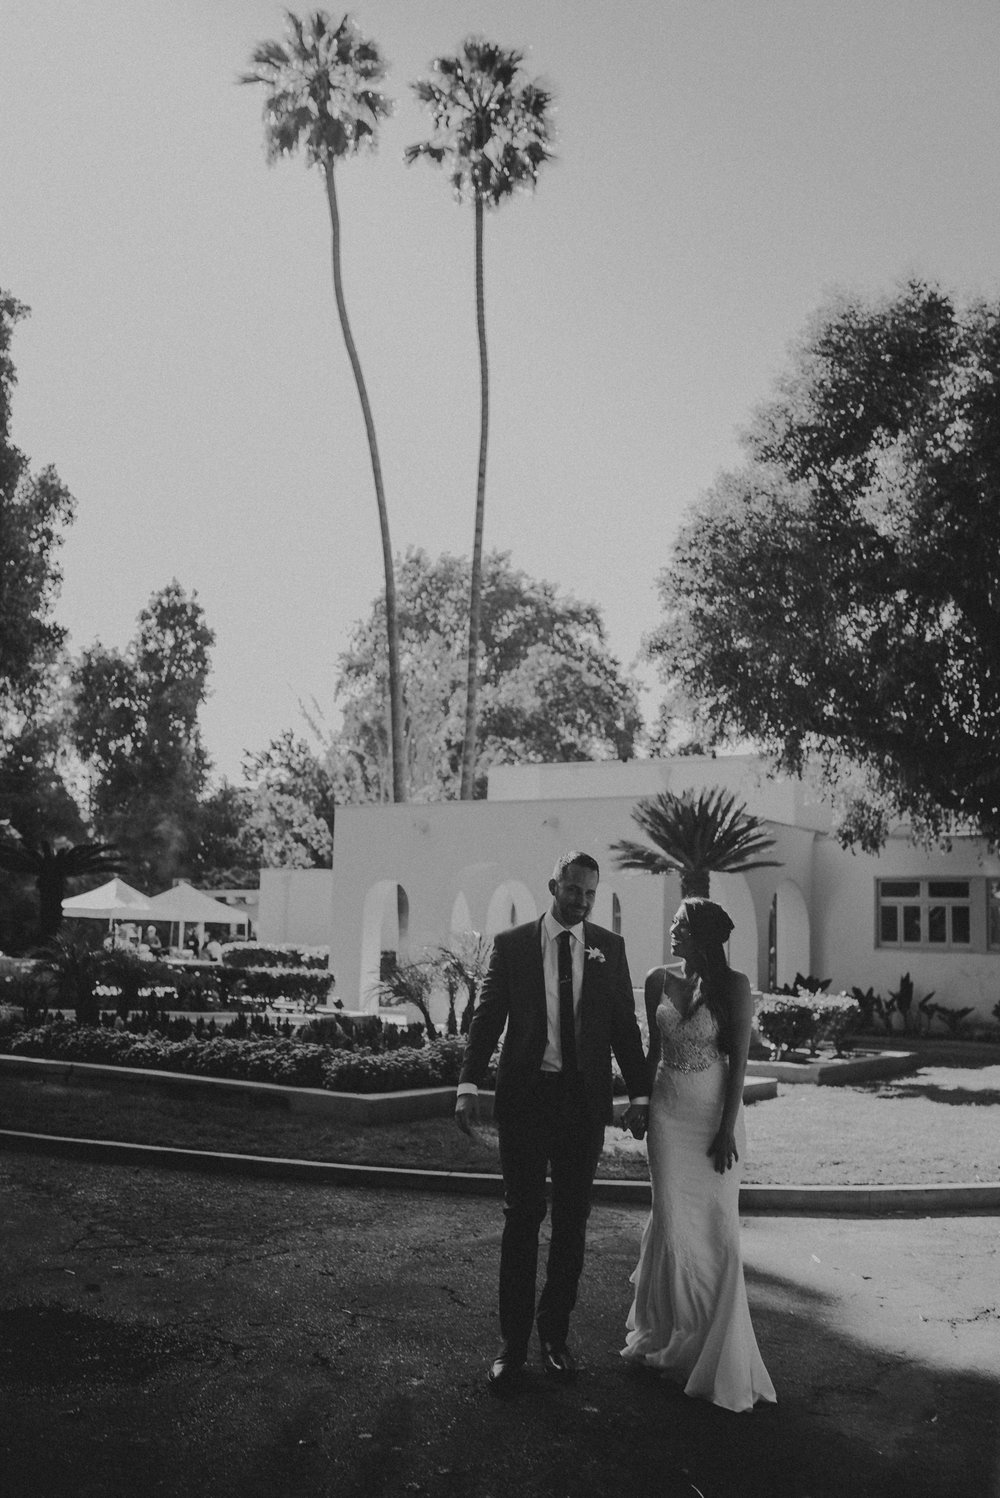 Wedding Photographer in Los Angeles - The Clarke Estate Wedding - IsaiahAndTaylor.com-067.jpg